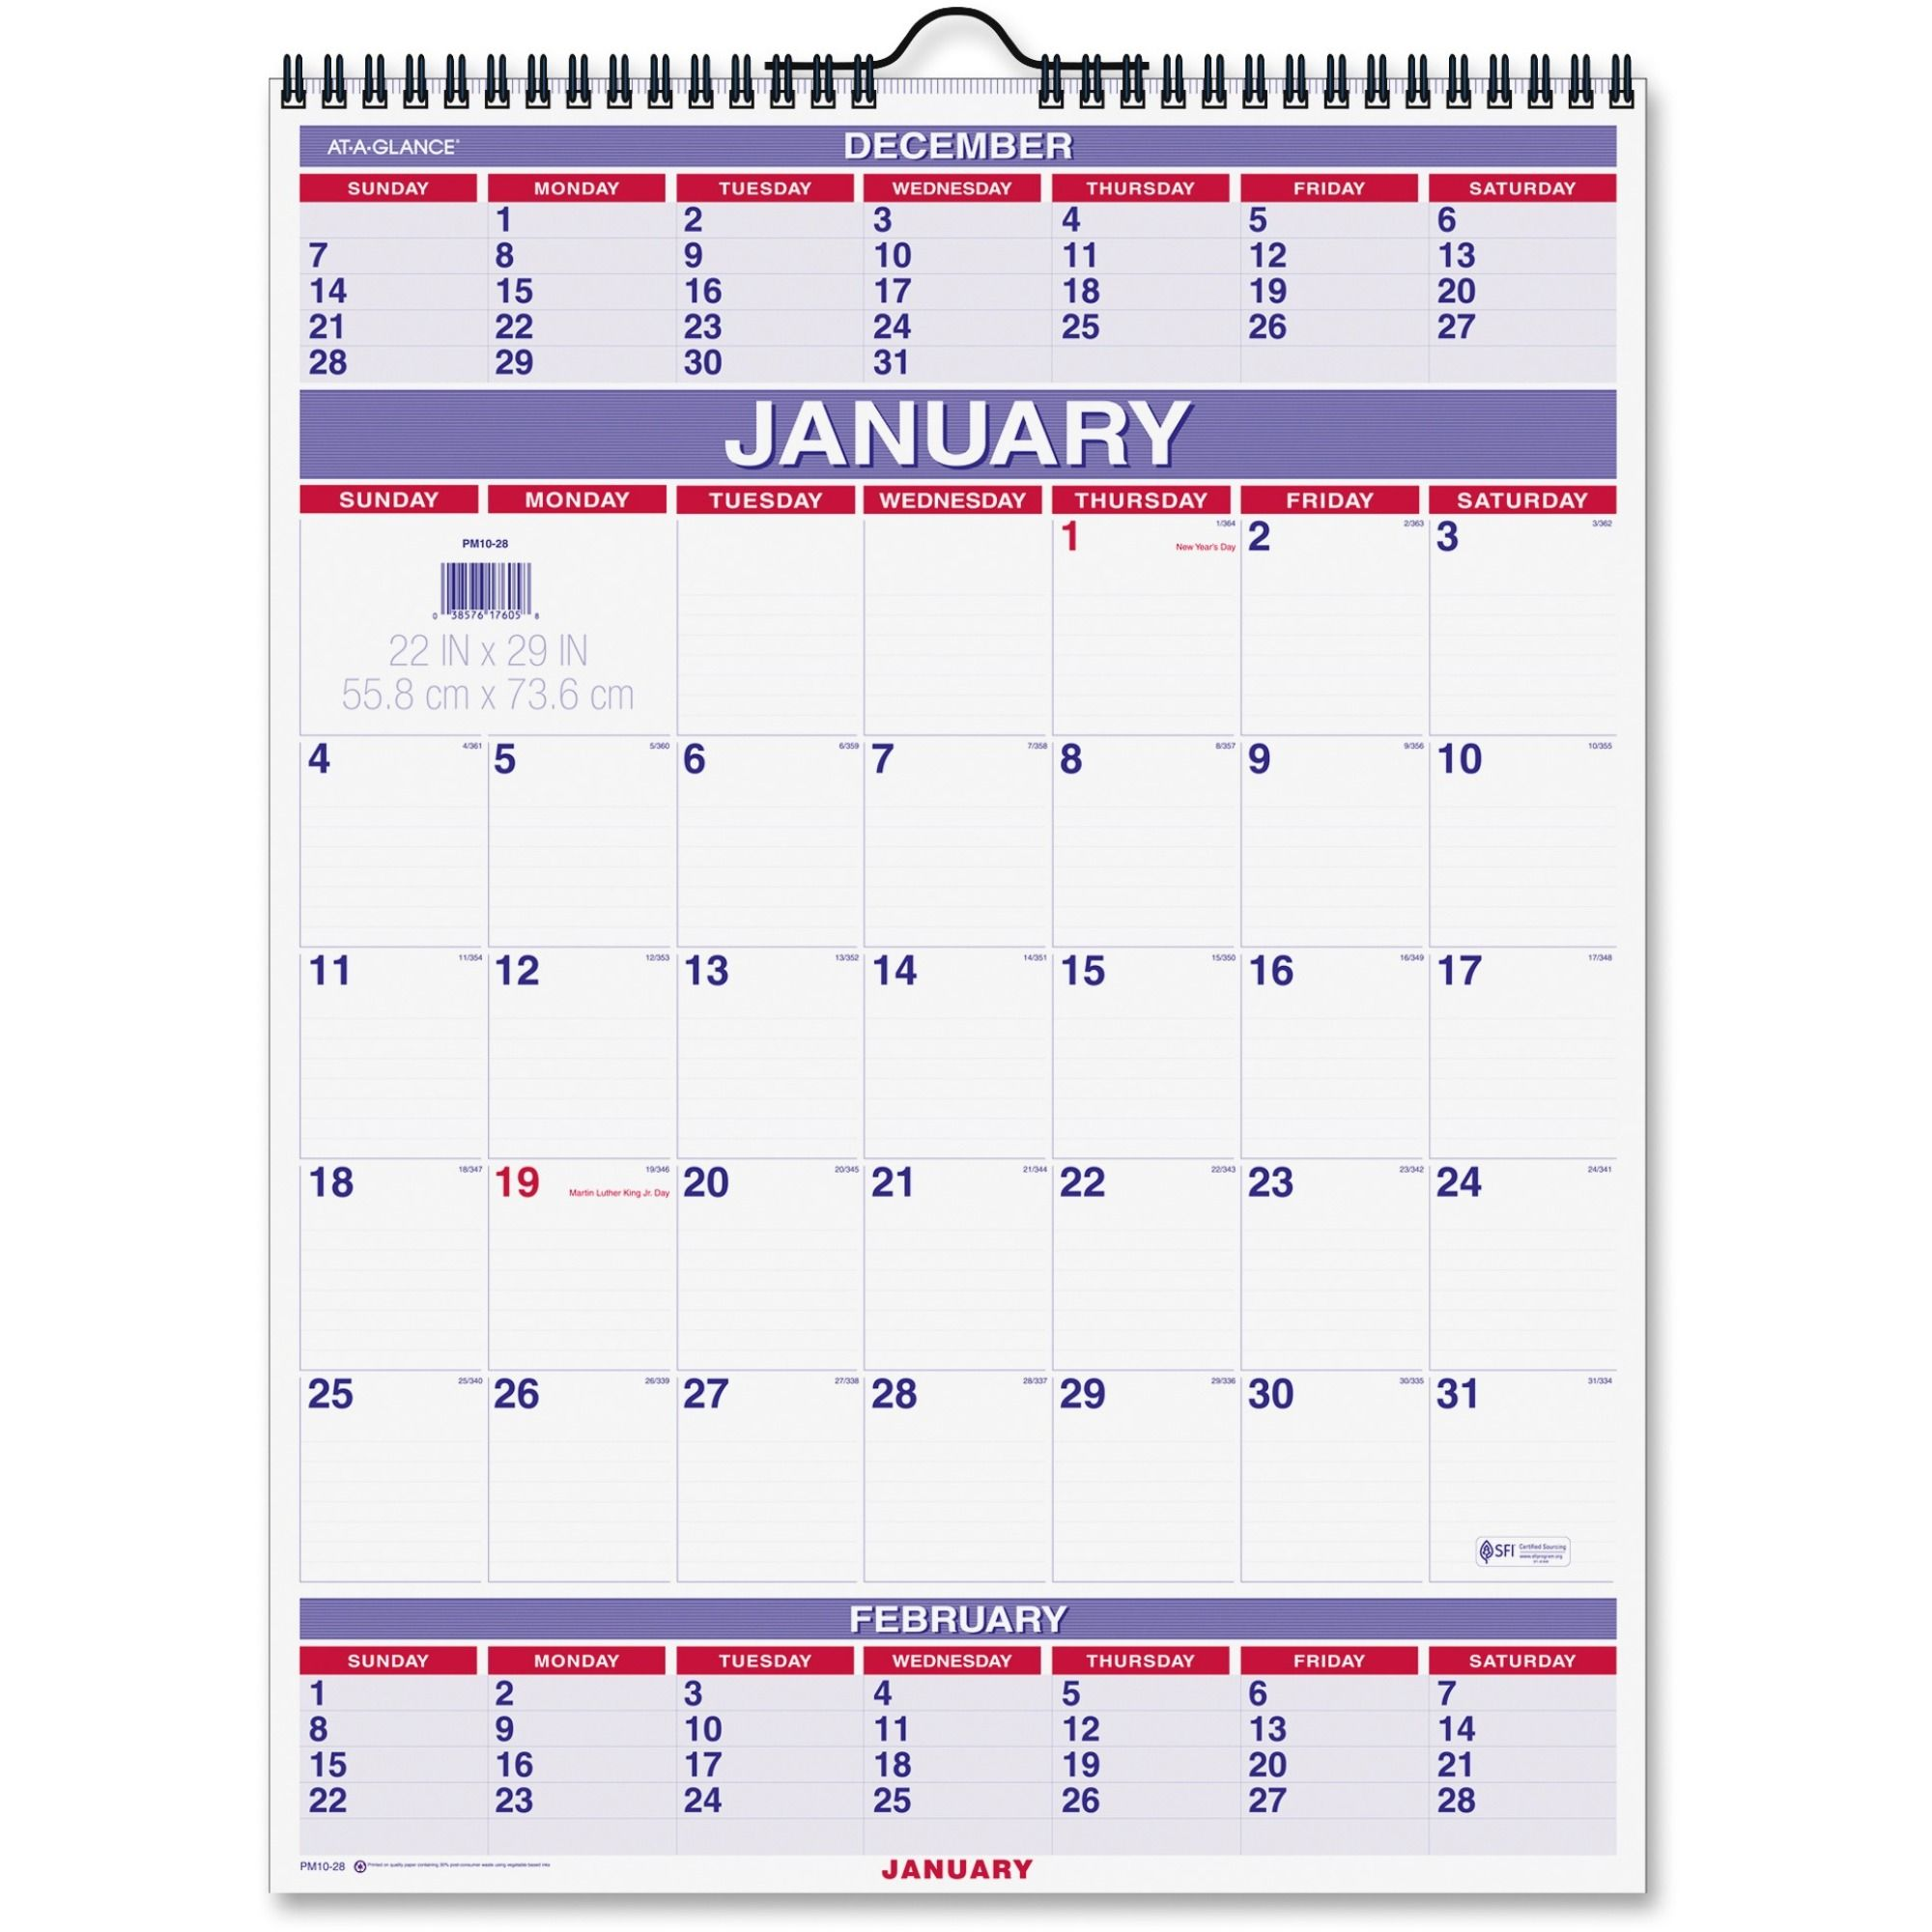 Image Result For Hanging 2000 Calendar Sunday Monday Tuesday